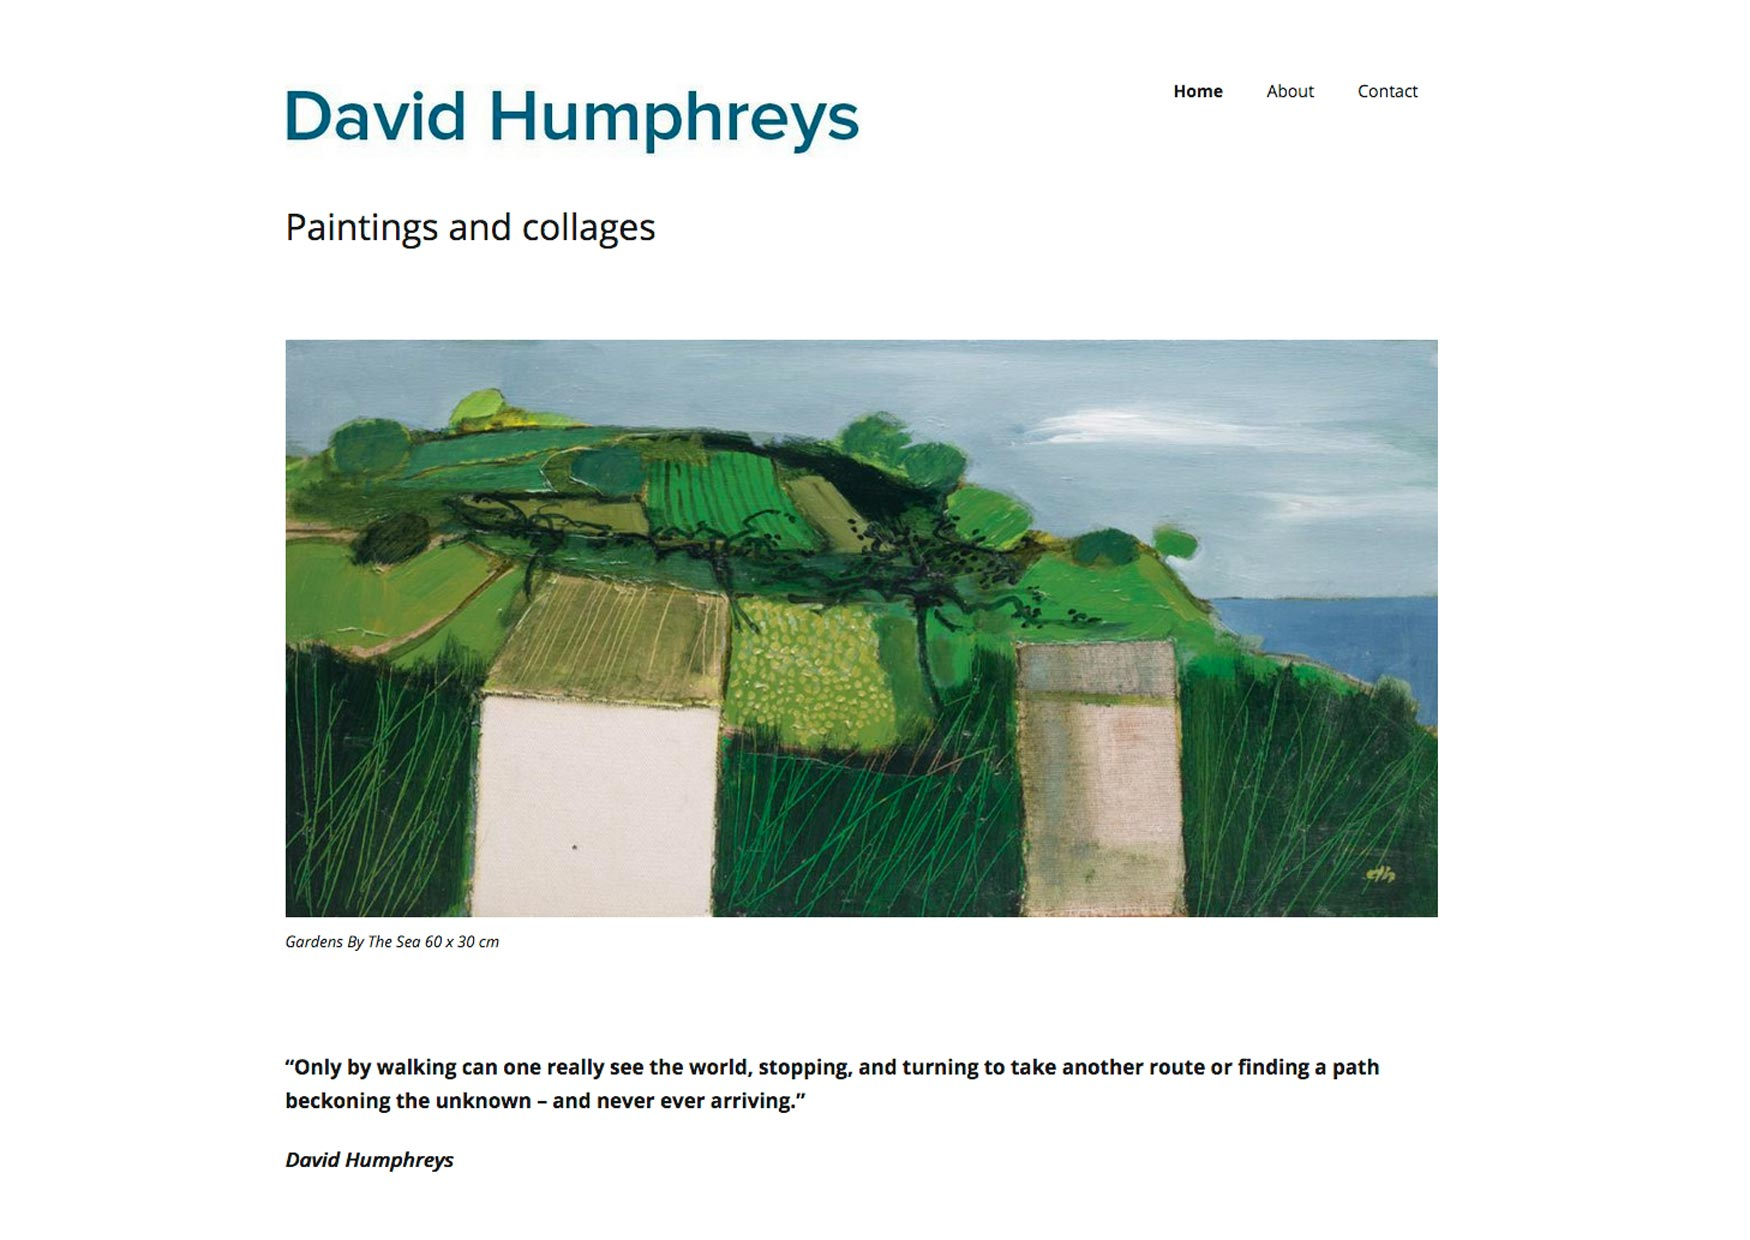 David Humphreys Art